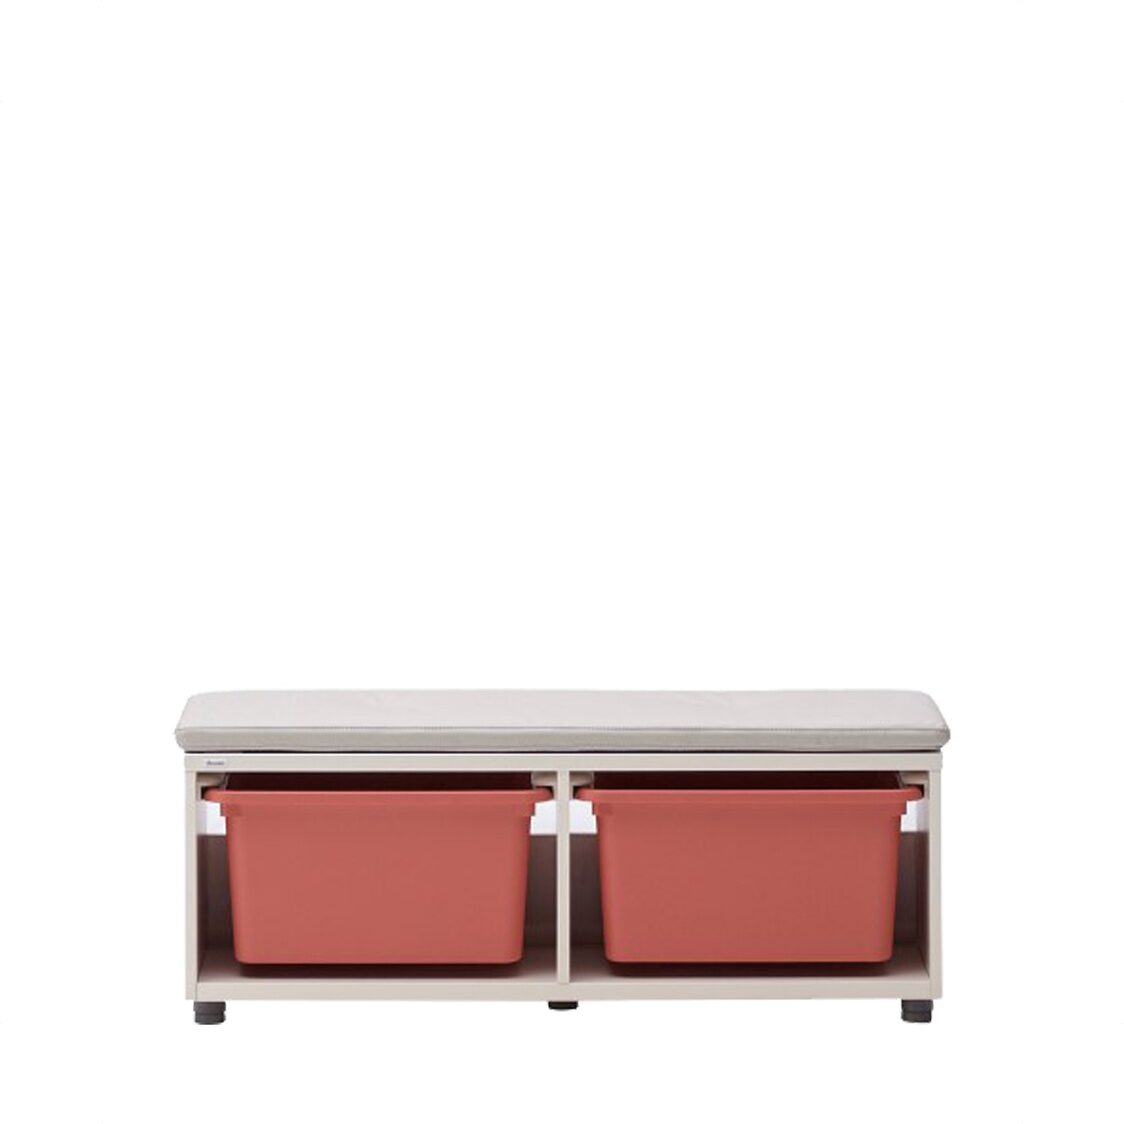 Iloom 950W Bench with storage HSFP191-IVKR